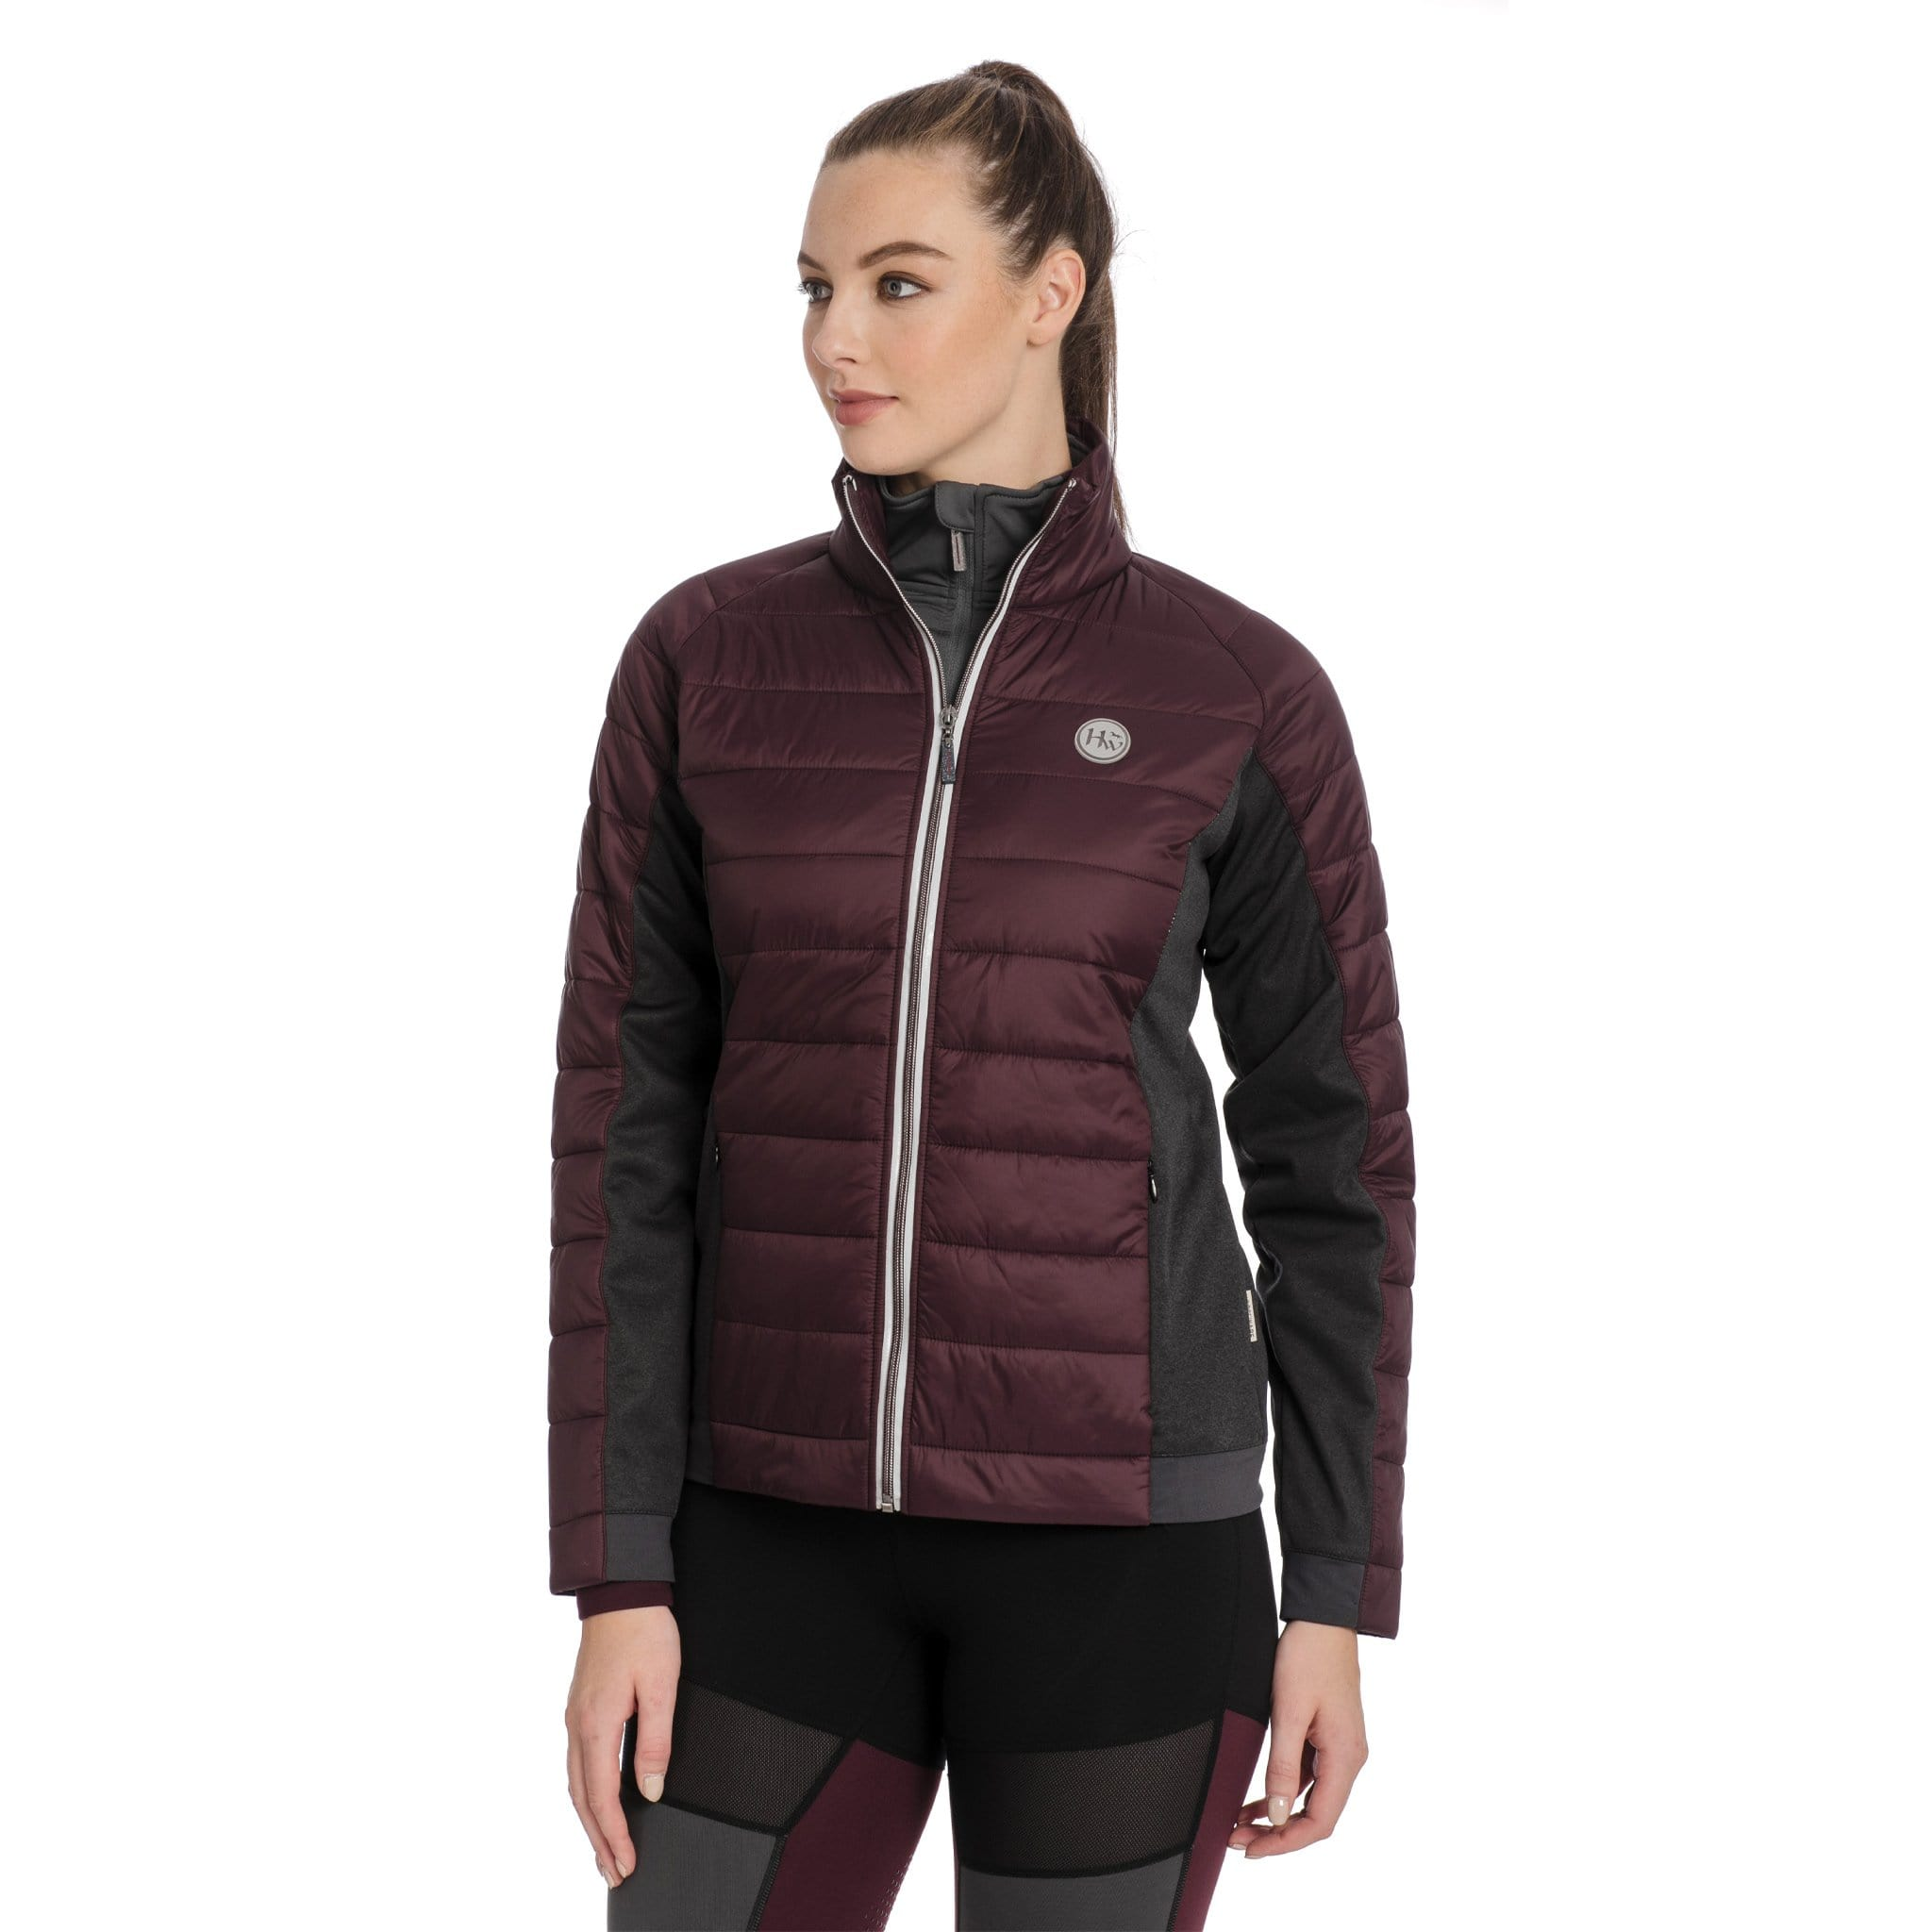 Horseware Winter Hybrid Jacket CBHDTA On Model Front View